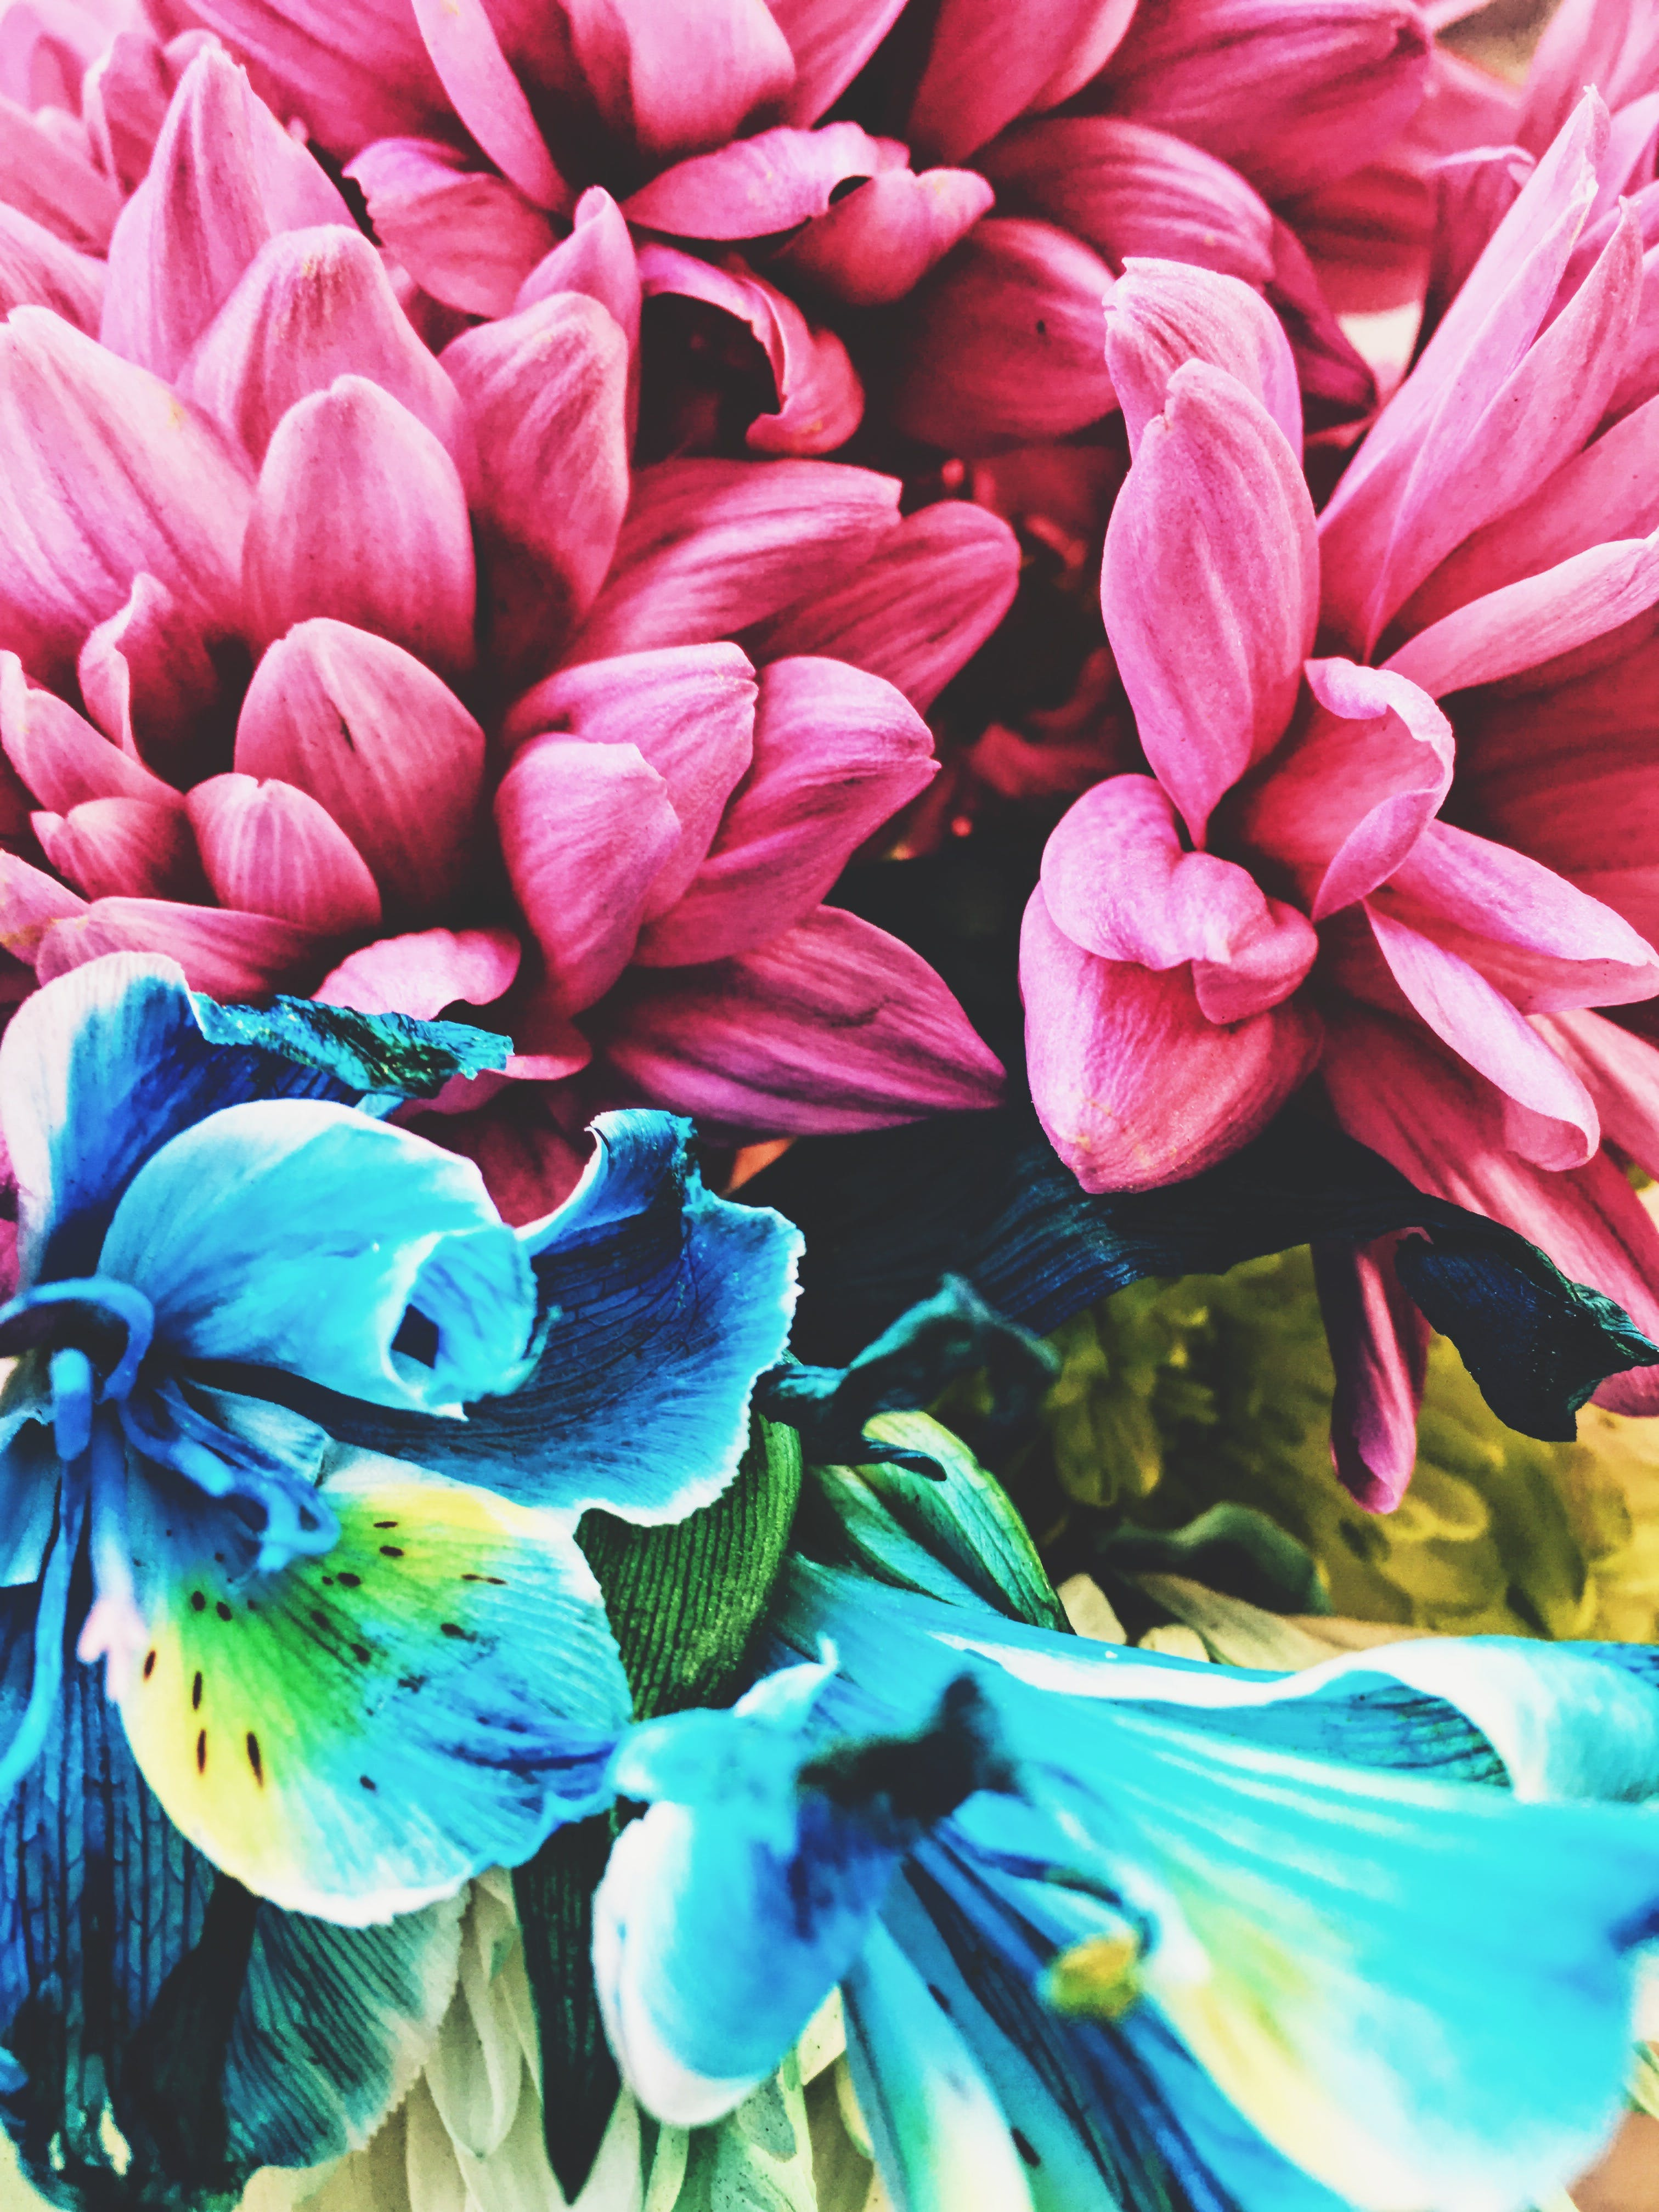 Free stock photo of artificial flowers, beautiful flowers, mobilechallenge